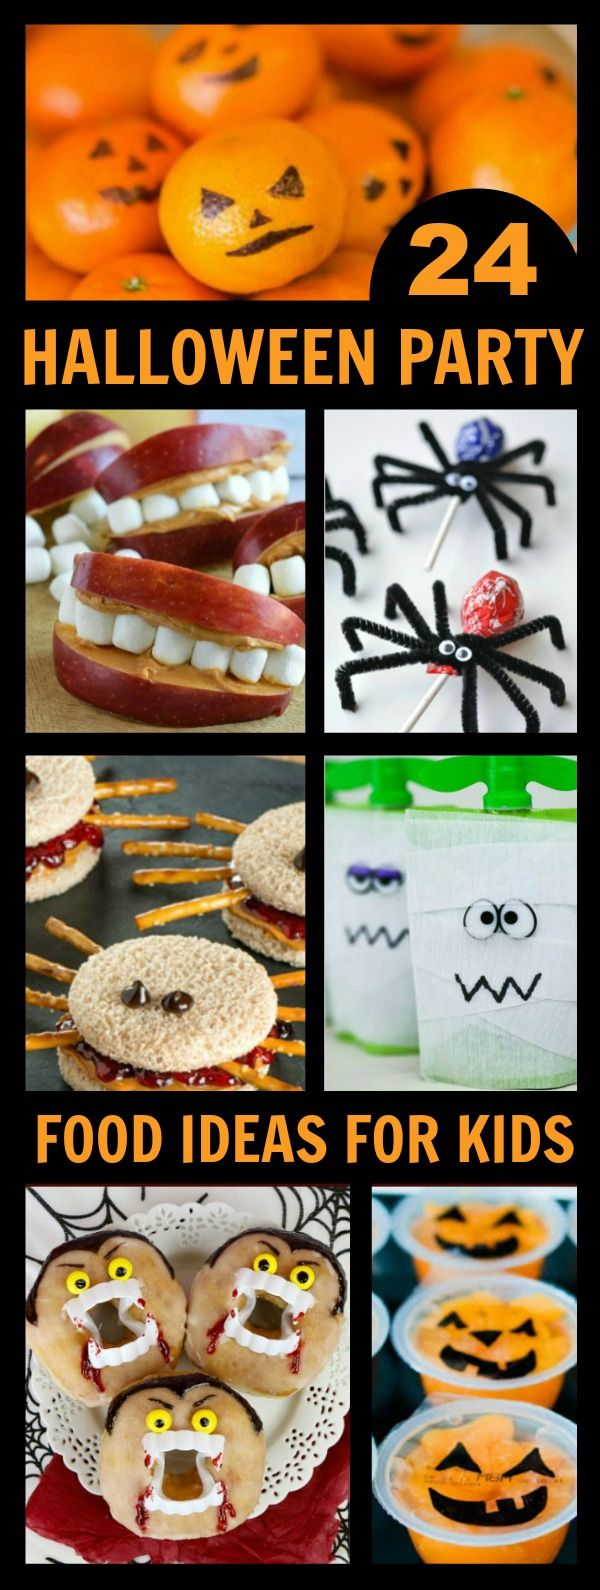 EASY & ADORABLE HALLOWEEN FOOD IDEAS FOR KIDS- great for class parties and…